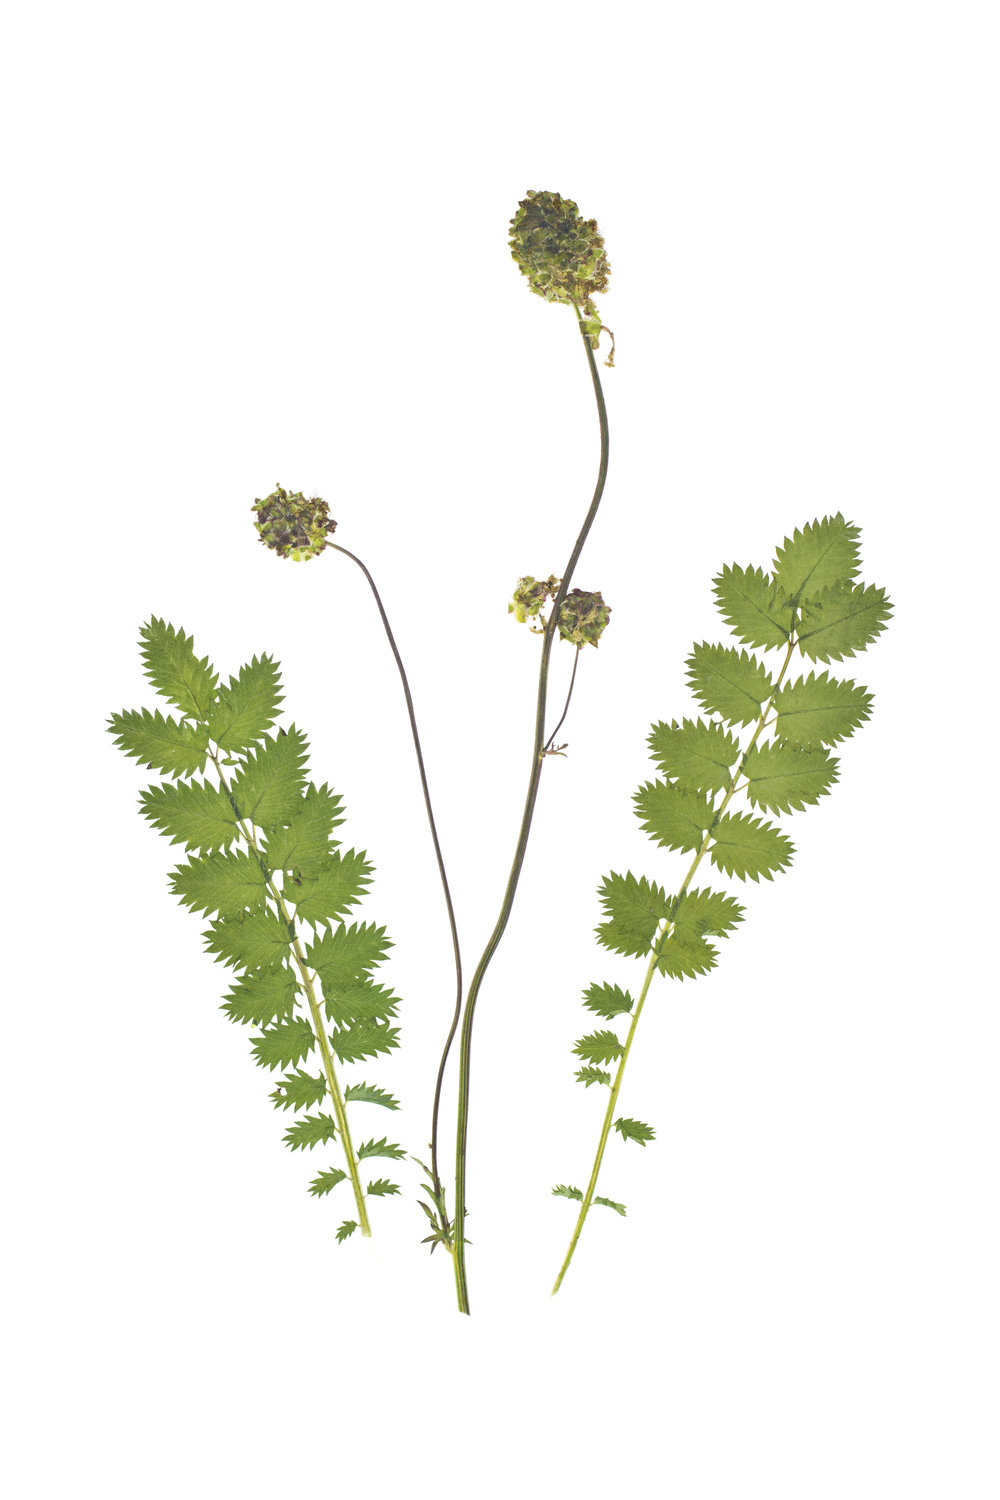 Sanguisorba minor / Salad Burnet